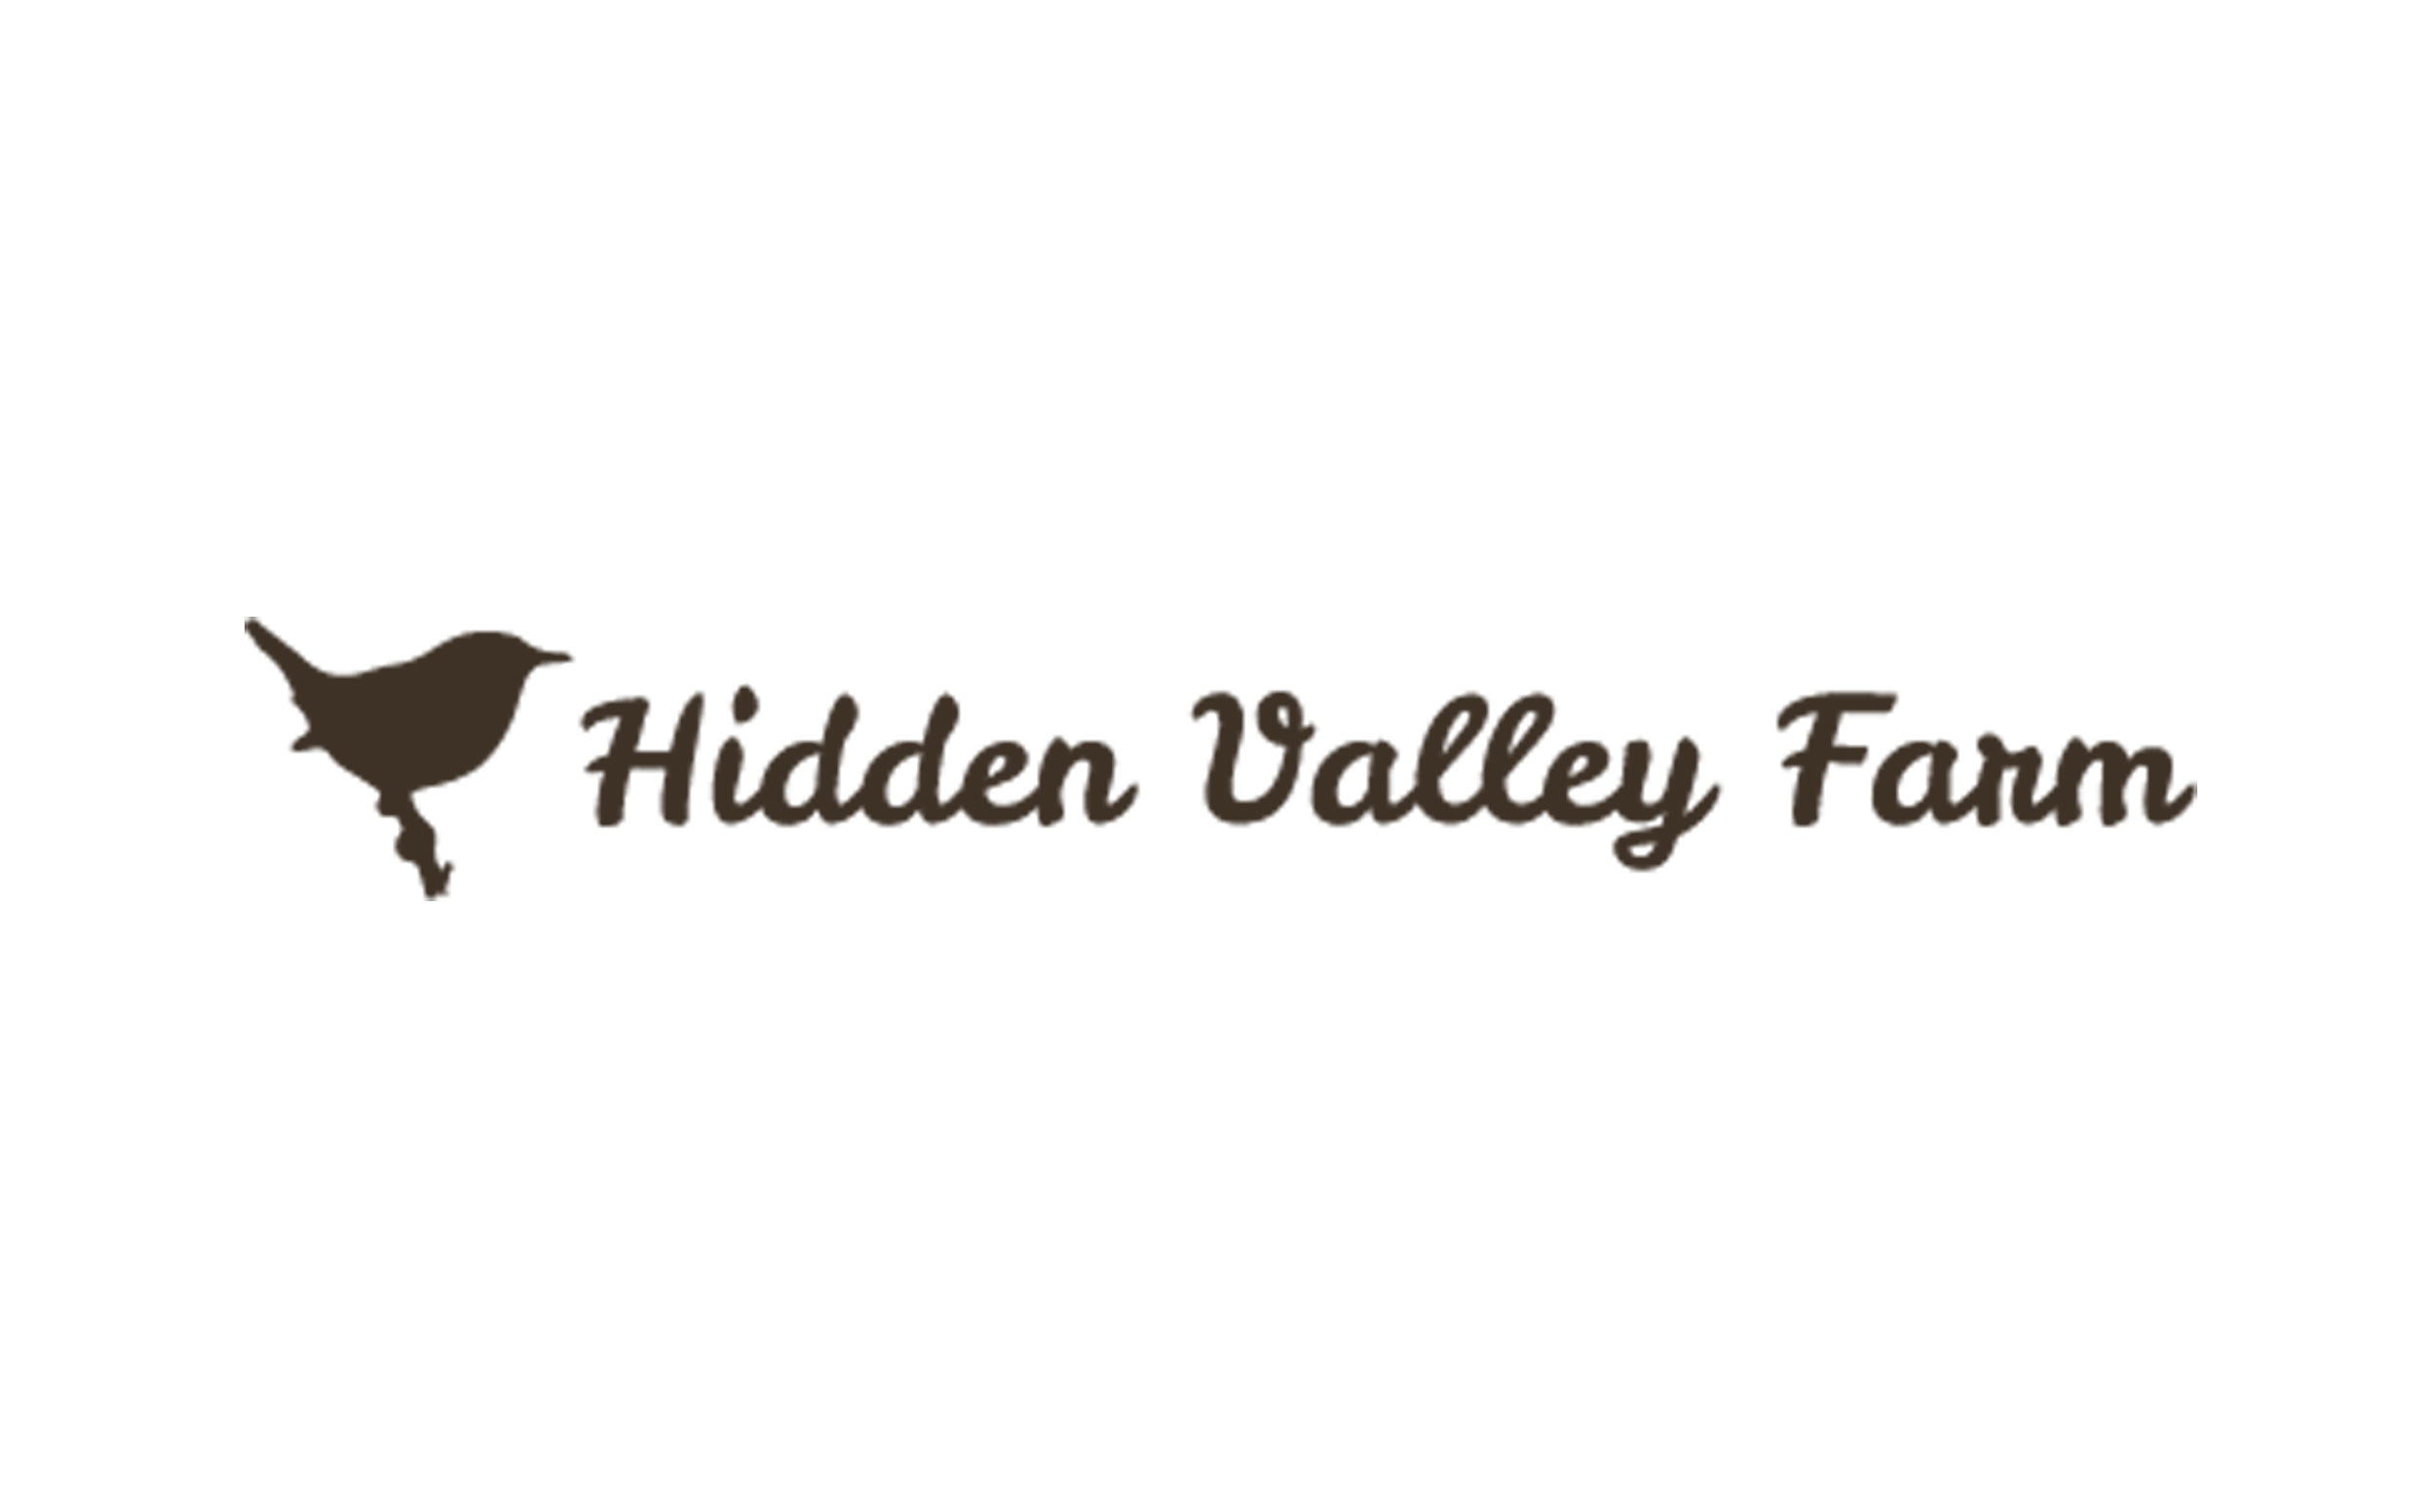 Hidden Valley Farm